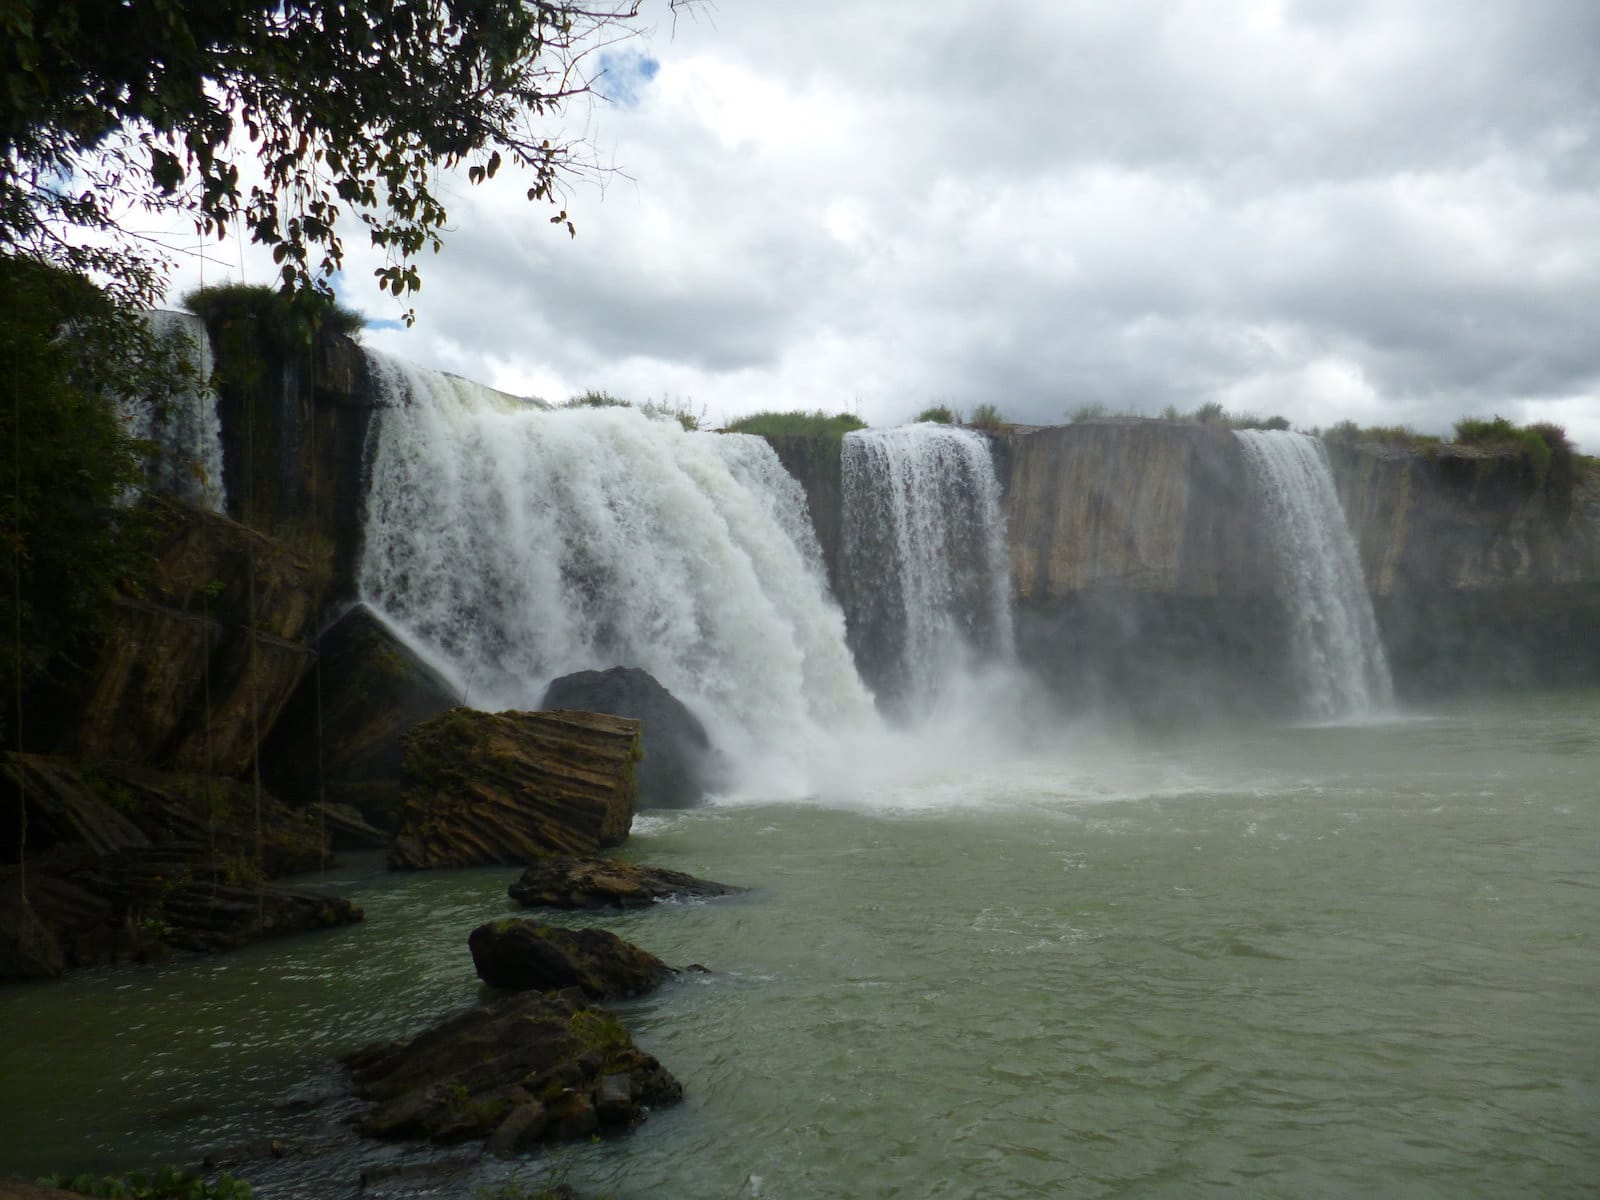 Image of the Dray Nur Waterfalls in Buon Ma Thuot, Vietnam